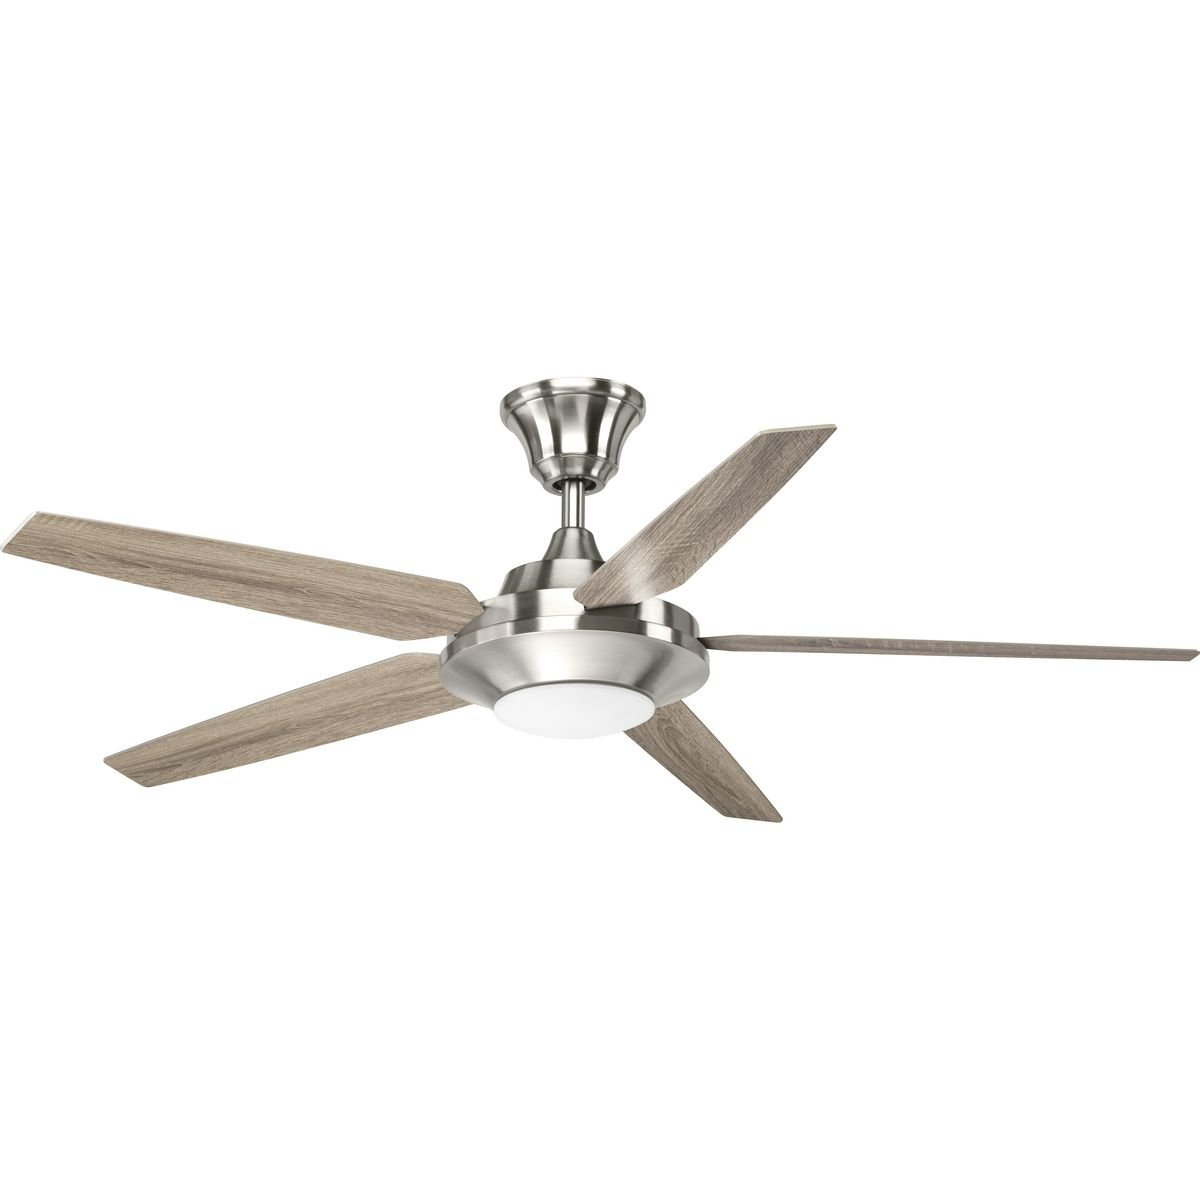 "5 Blade Ceiling Fans With Remote Intended For Newest 54"" Searles 5 Blade Led Ceiling Fan With Remote, Light Kit Included (Gallery 8 of 20)"